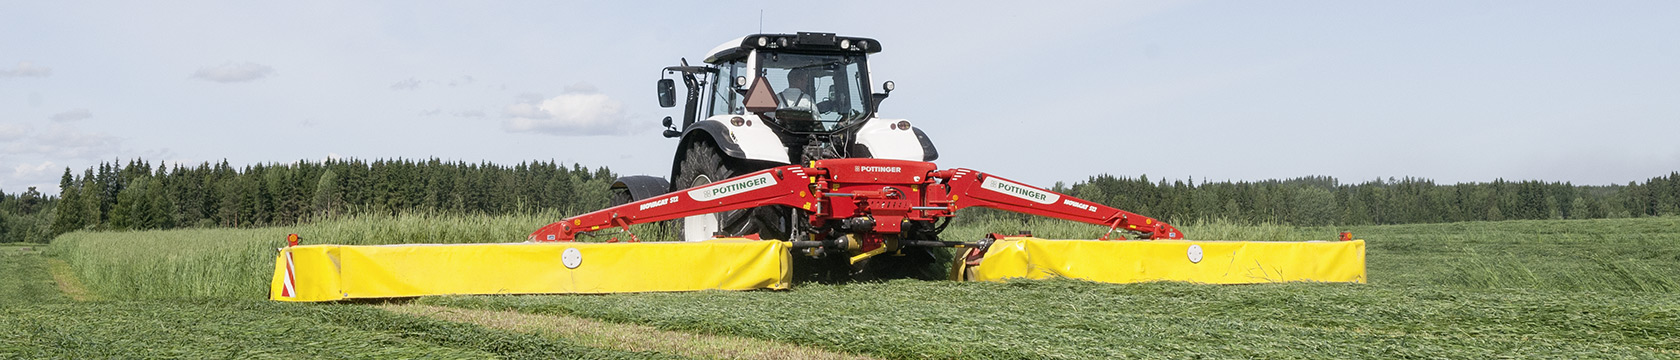 NOVACAT S Mower combination